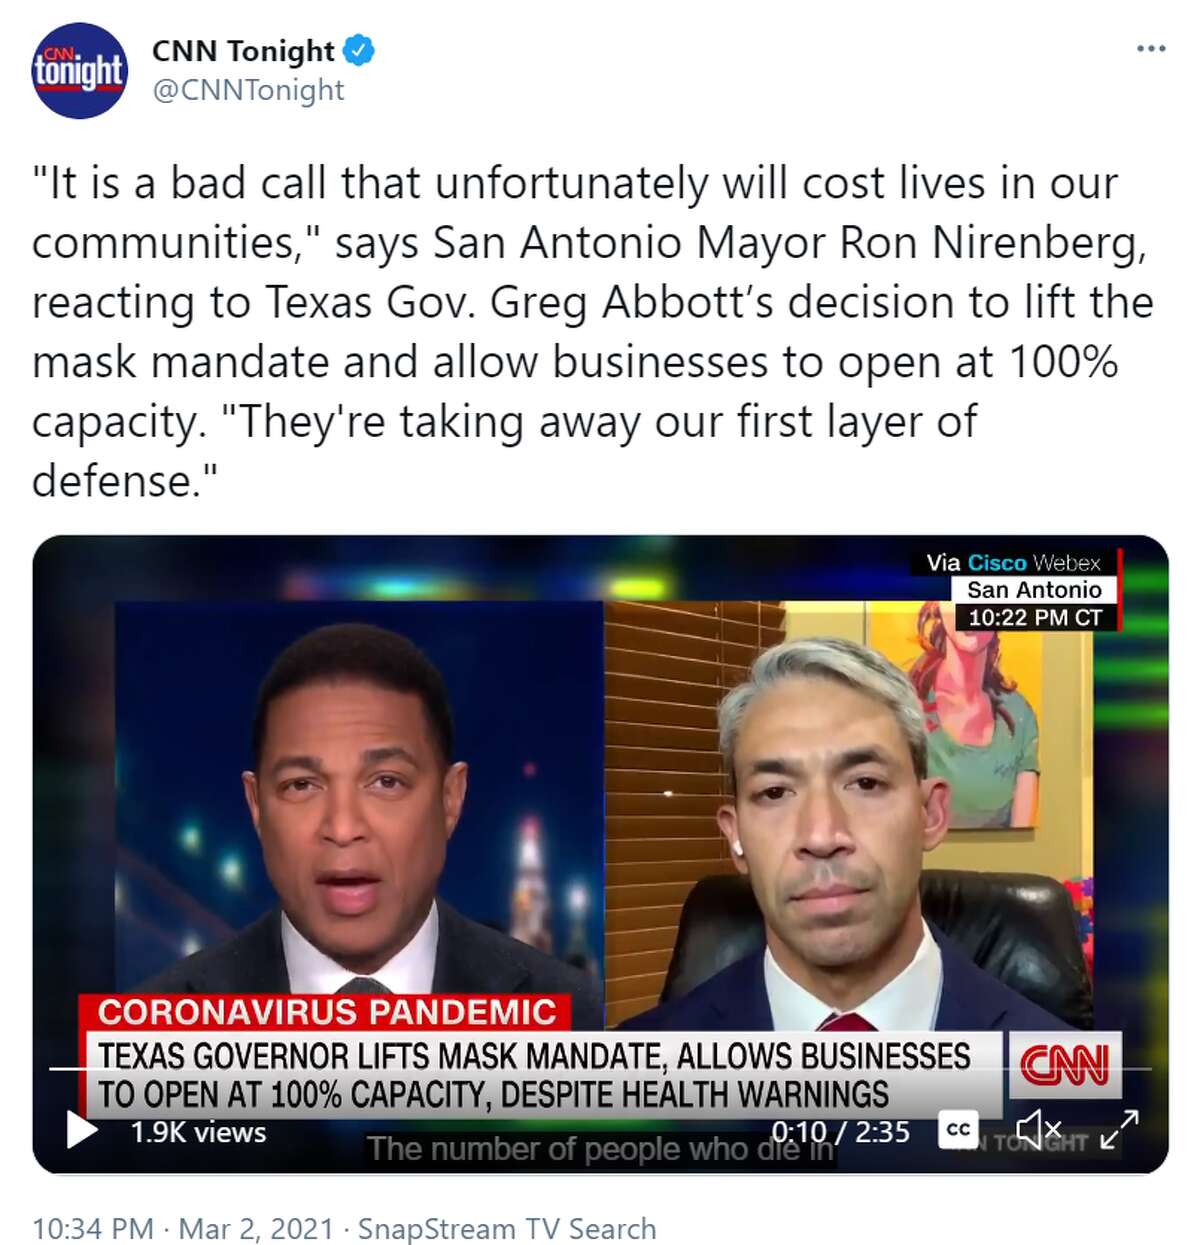 San Antonio Mayor Ron Nirenberg shared a grim outlook for the state with CNN's Don Lemon Tuesday evening in response to Gov. Greg Abbott's controversial ruling to fully reopen Texas and end the mask mandate.